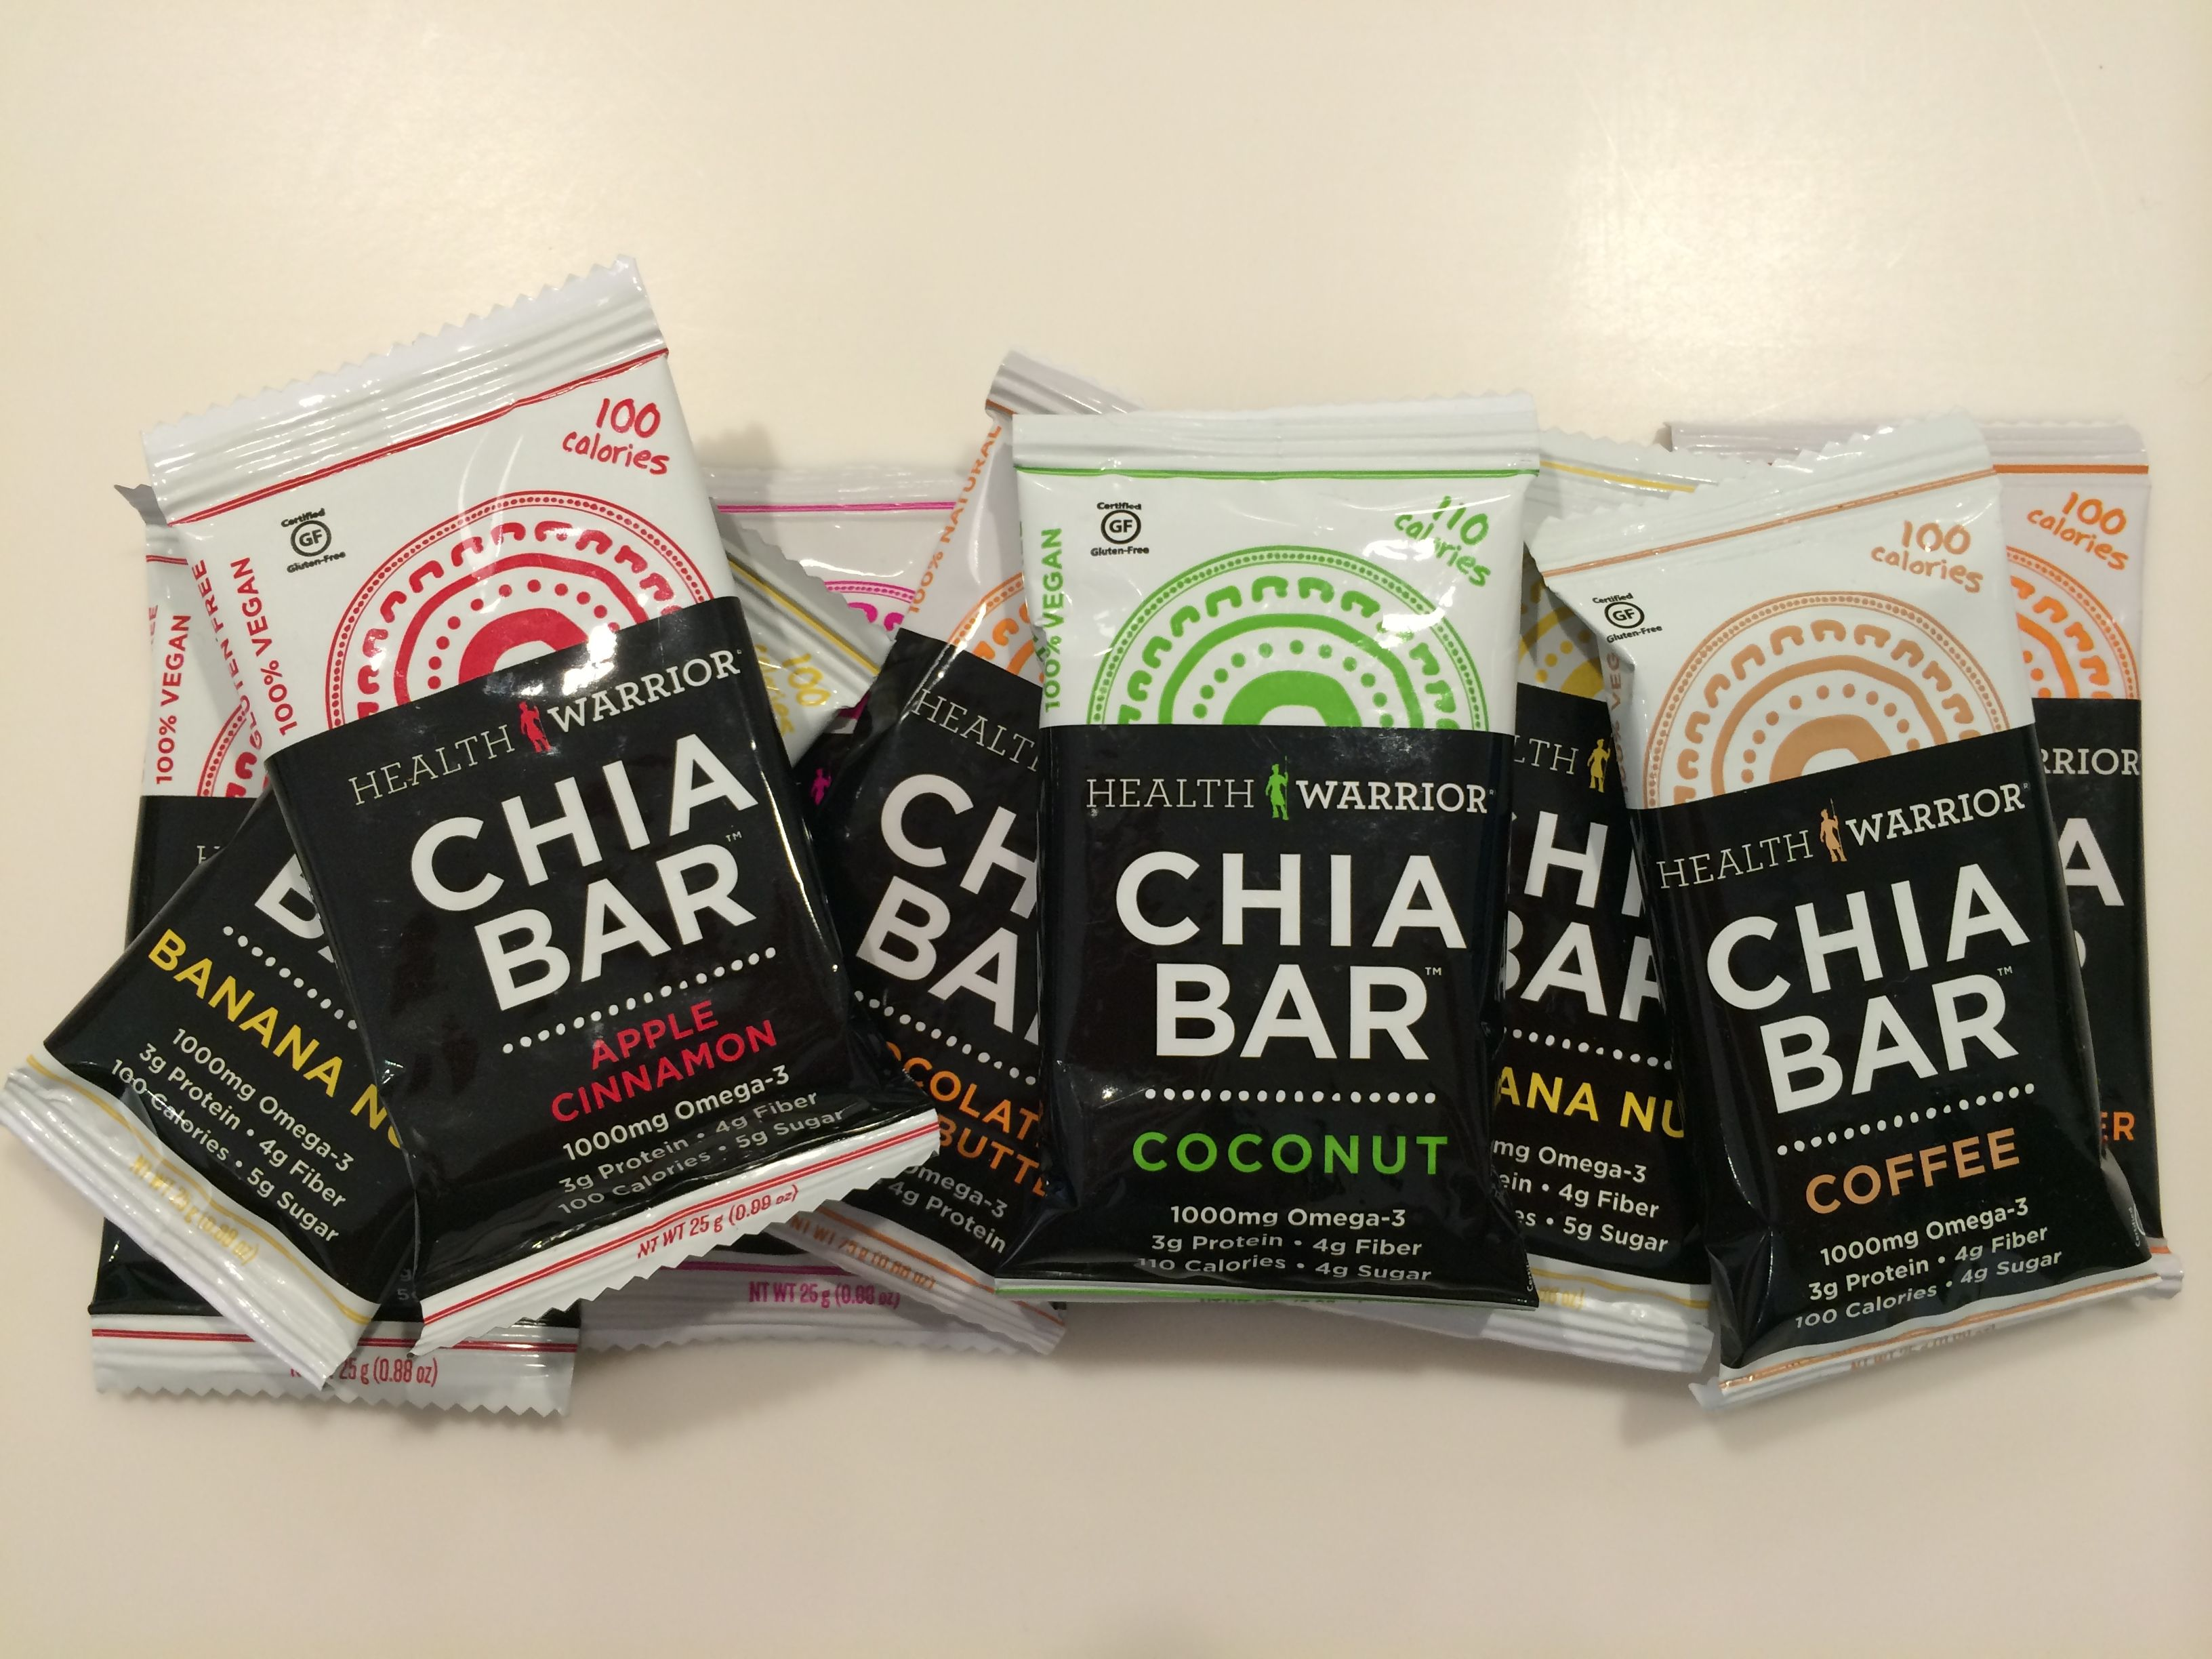 Get your health warrior chia bars at the swerve juice bar